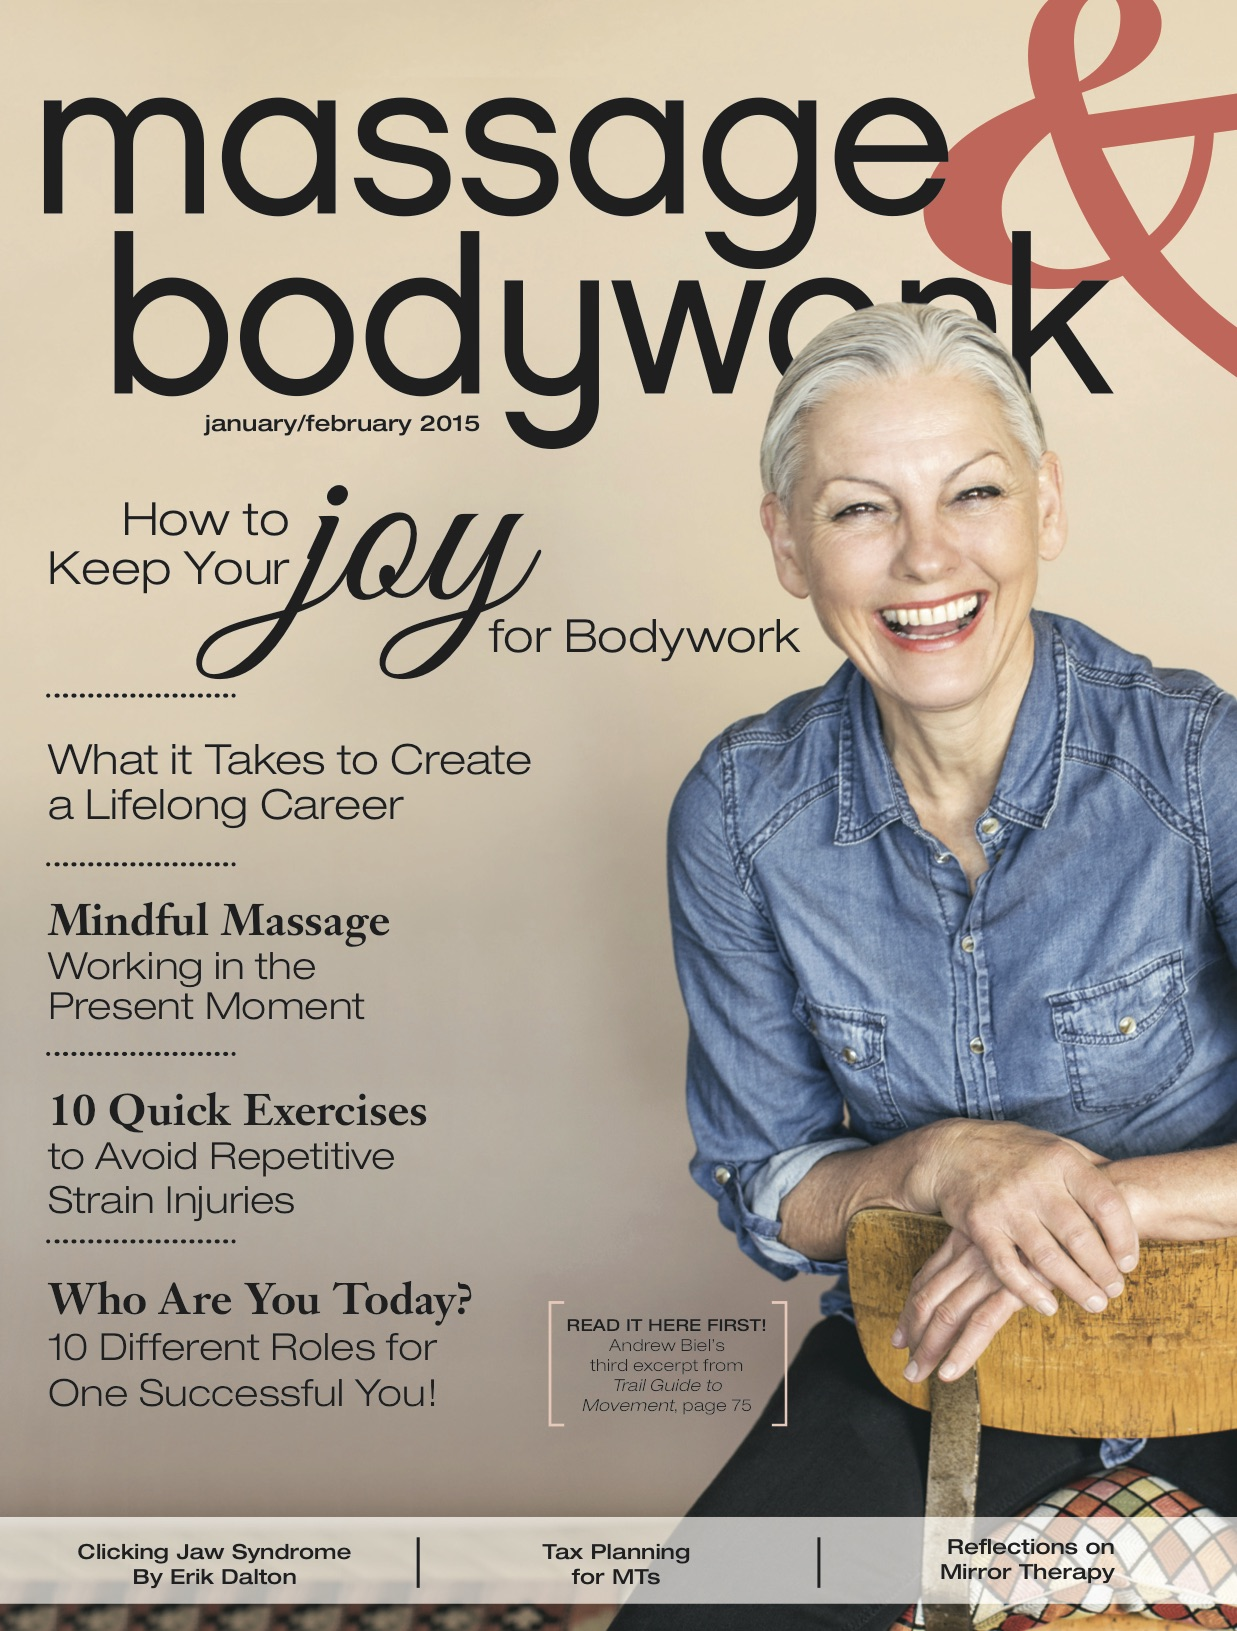 """Mindful Massage: Working in the Present Moment""   David M. Lobenstine  Massage & Bodywork  January/February 2015"